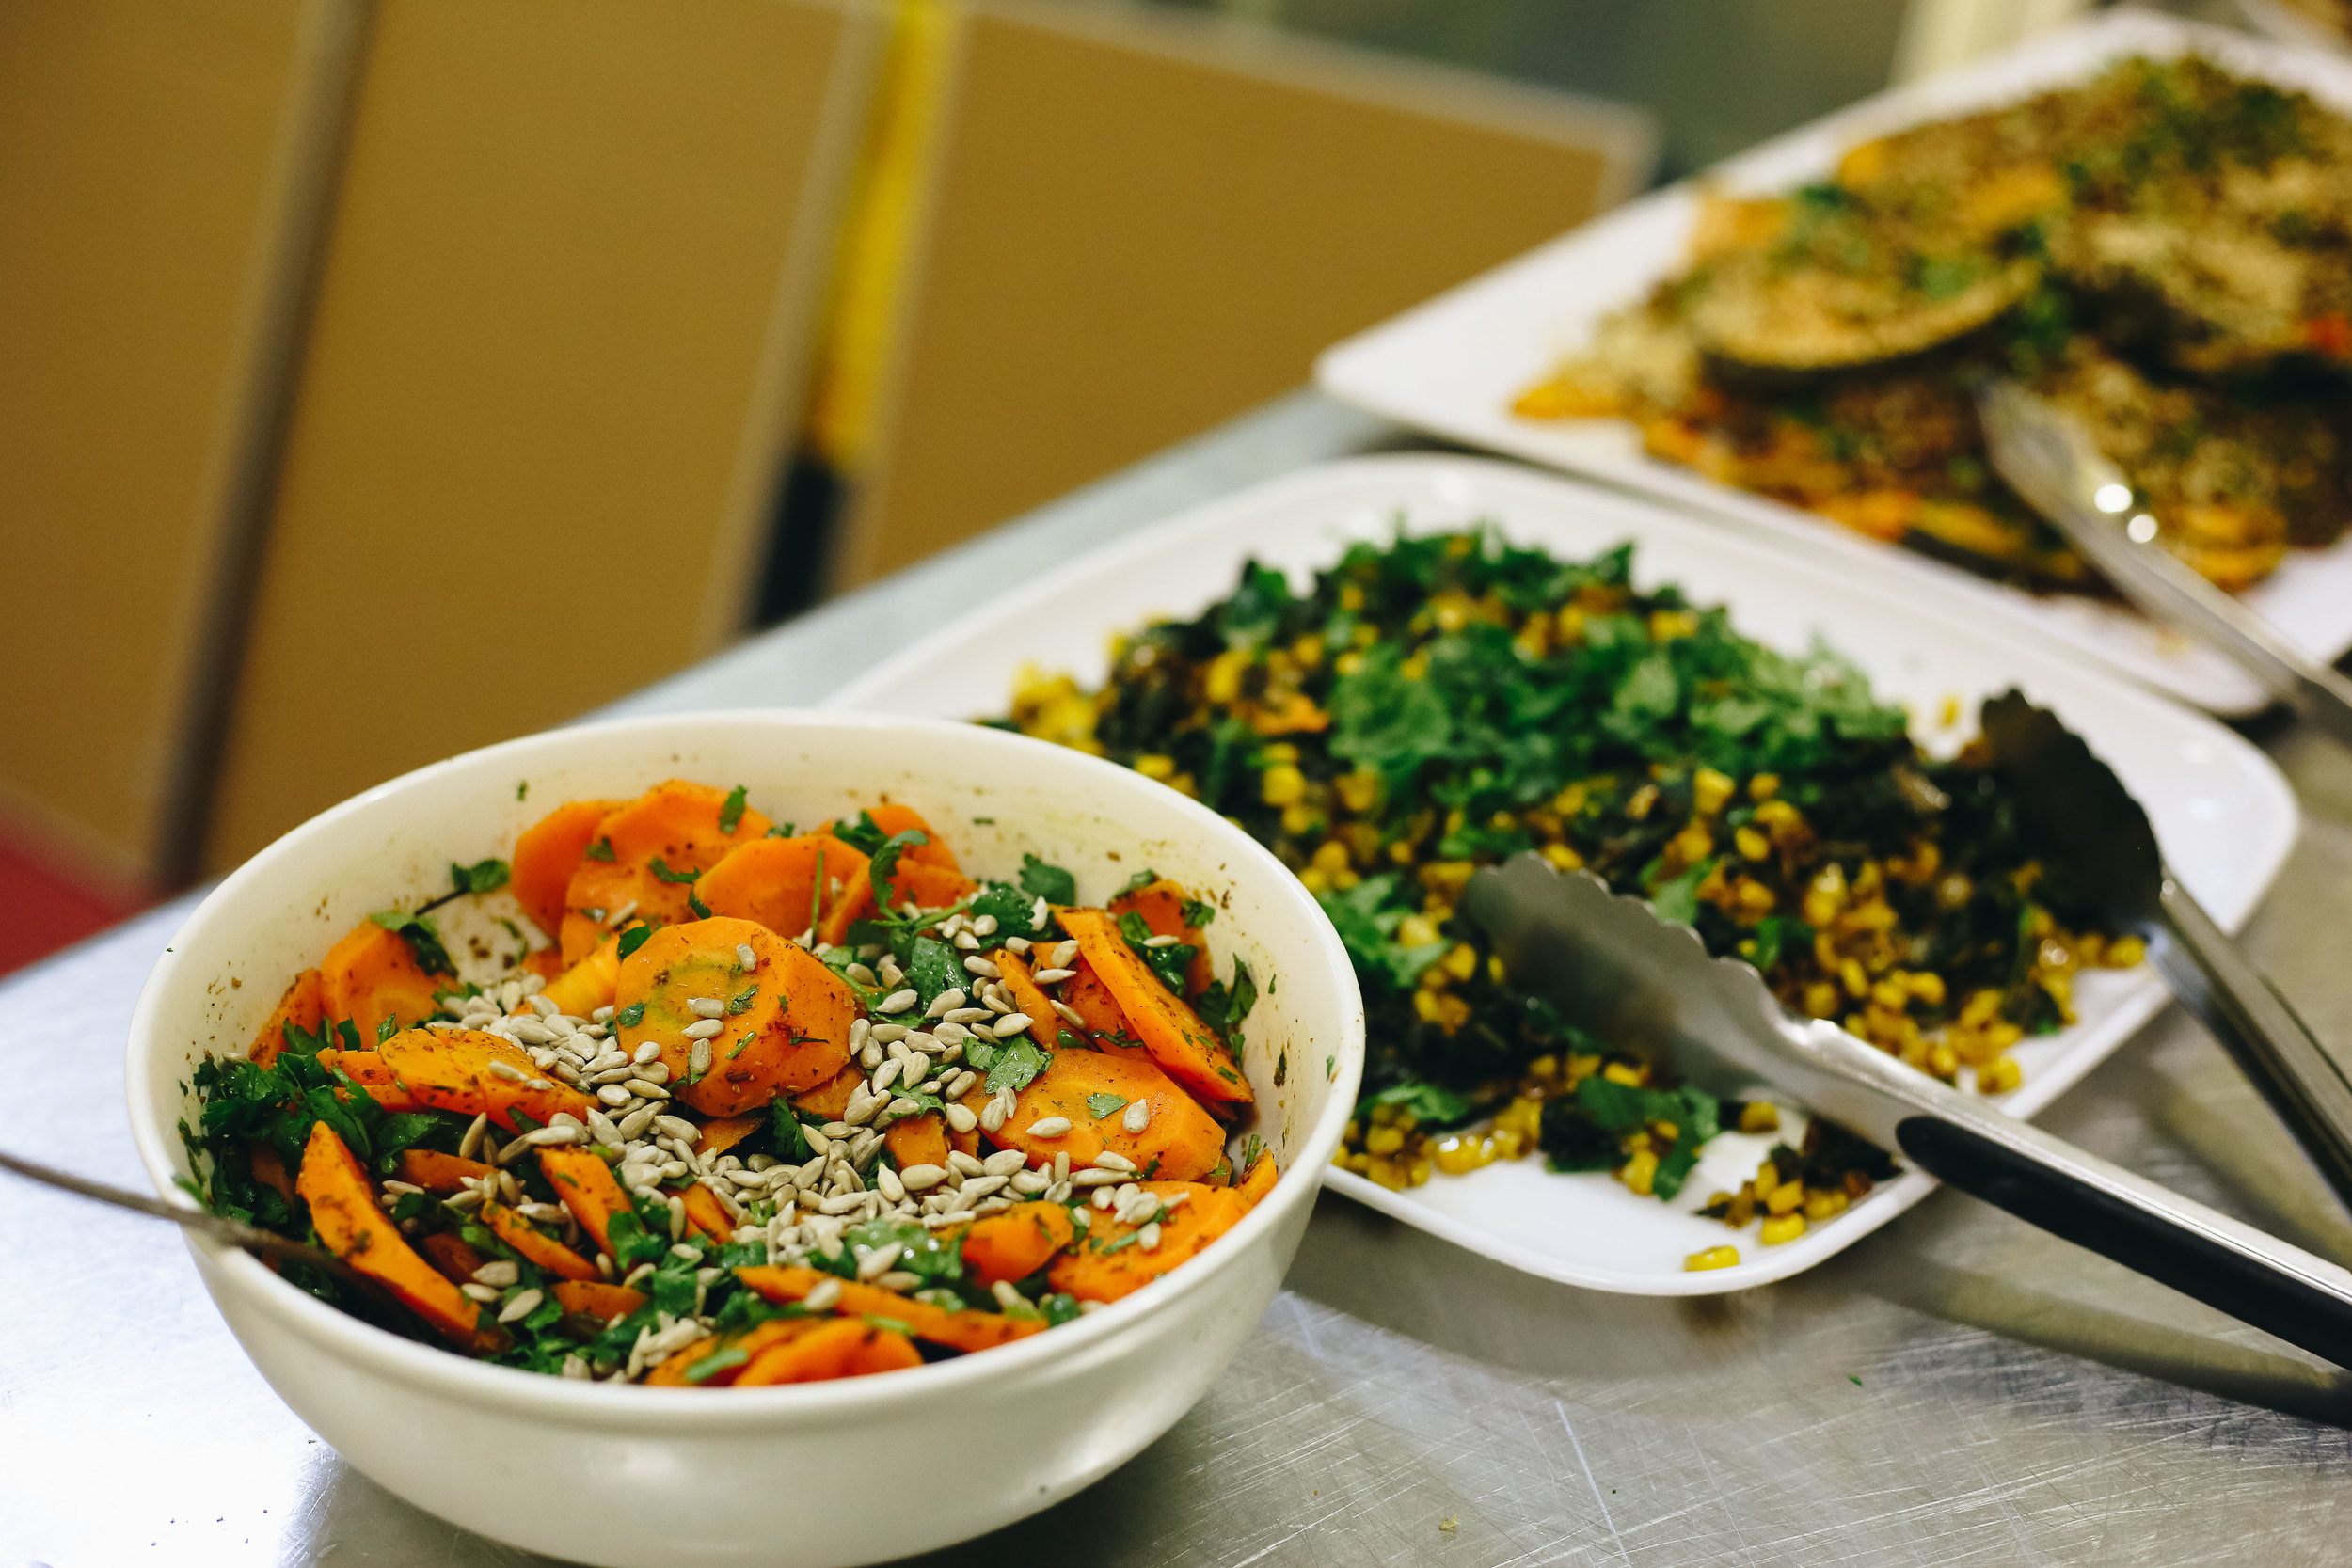 Fair Food Challenge provides a delicious seasonal, locally sourced lunch catering to different dietary needs including vegan and Halal diets